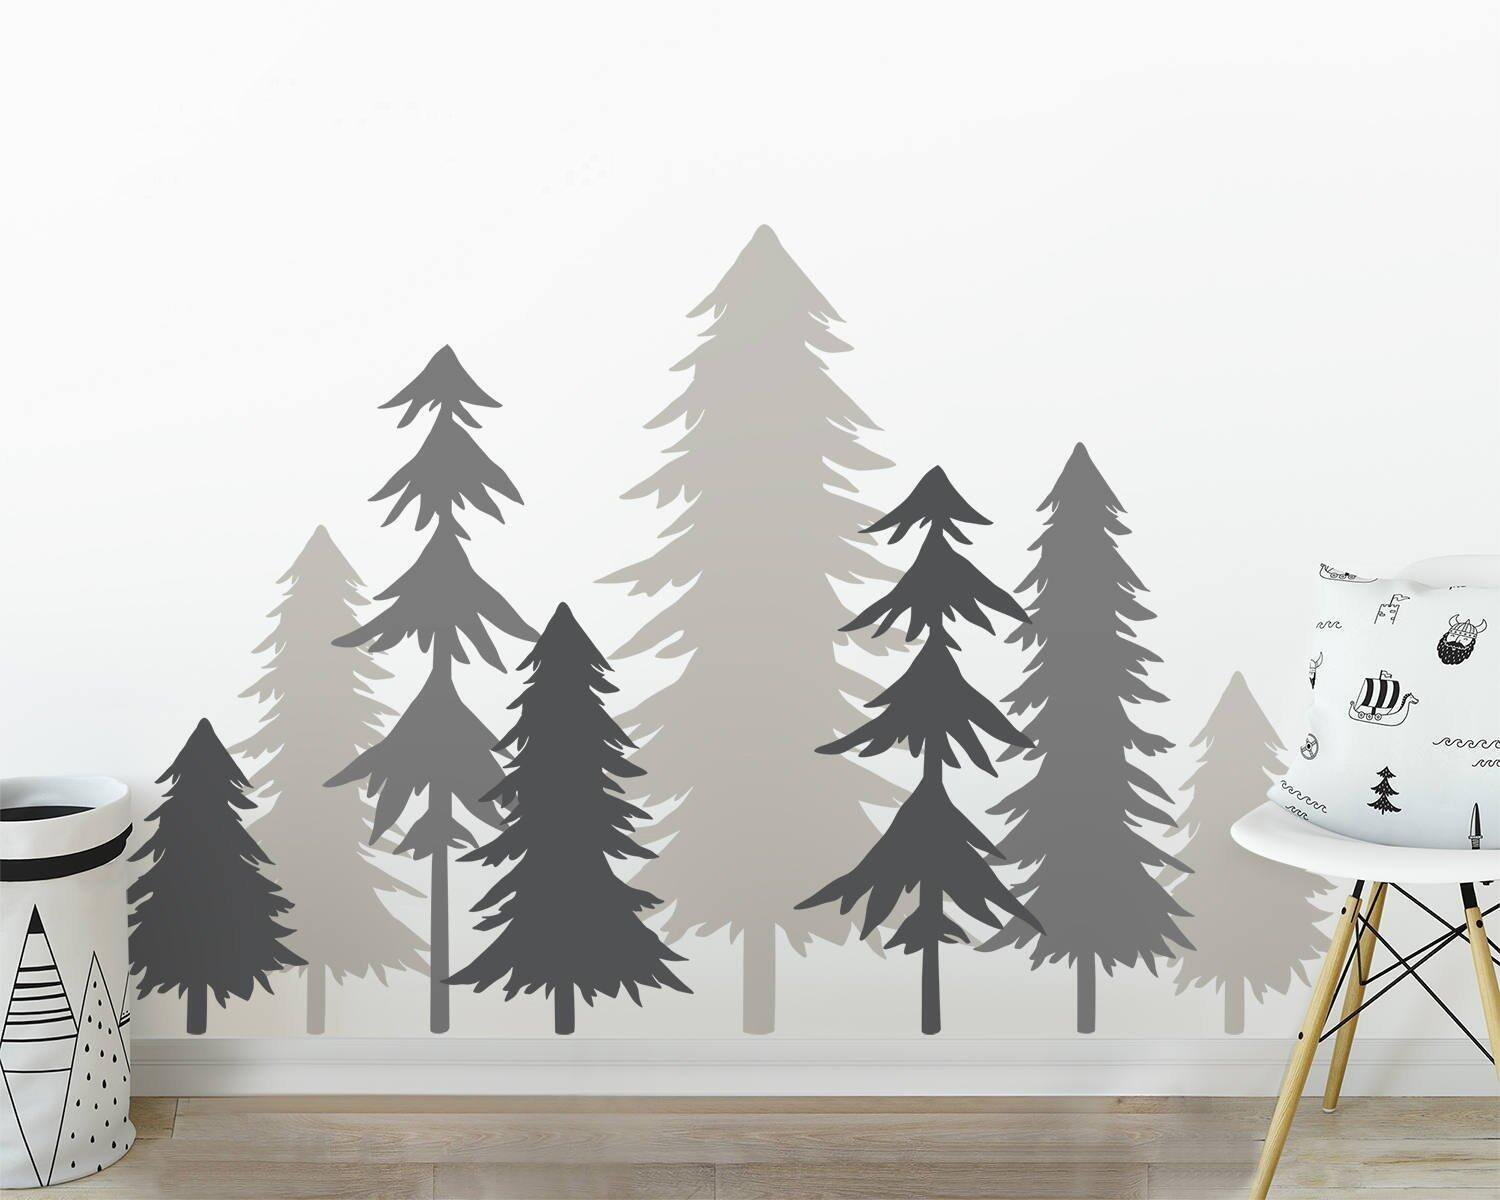 3 Color Pine Tree Forest Wall Decals Tree Wall Decals Forest Mural Forest Scene Decals Large Wall Decals Children's Forest Decals Set of 8